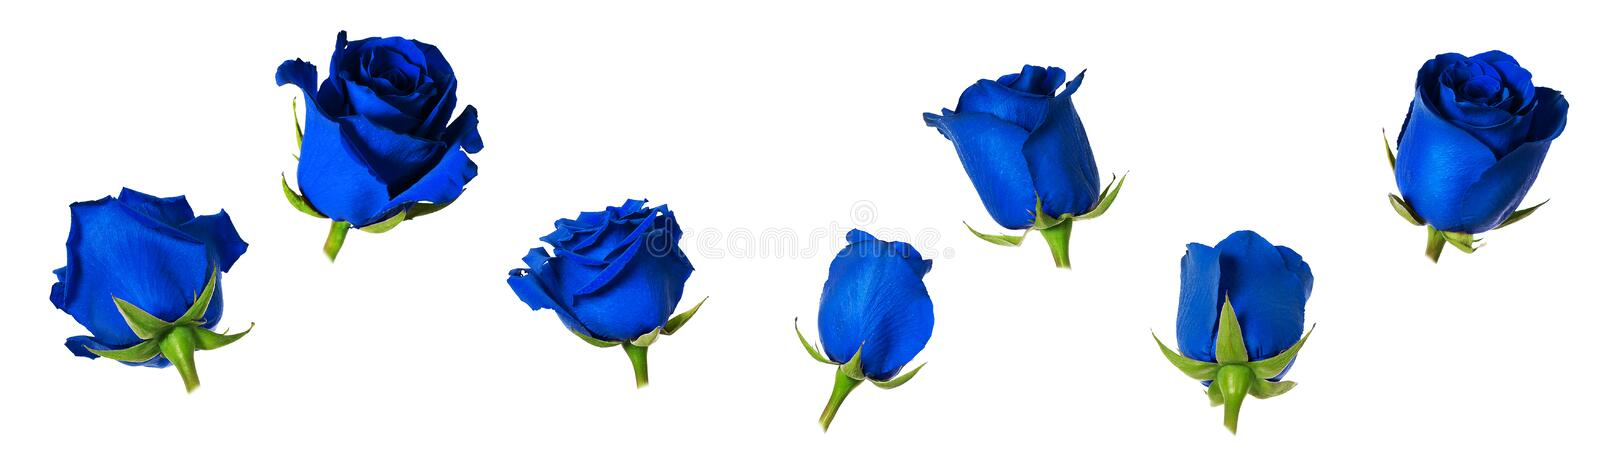 Set of seven beautiful blue rose flowerheads with sepals isolated on white background. Flowers are shot at different angles, includung side and back view royalty free illustration